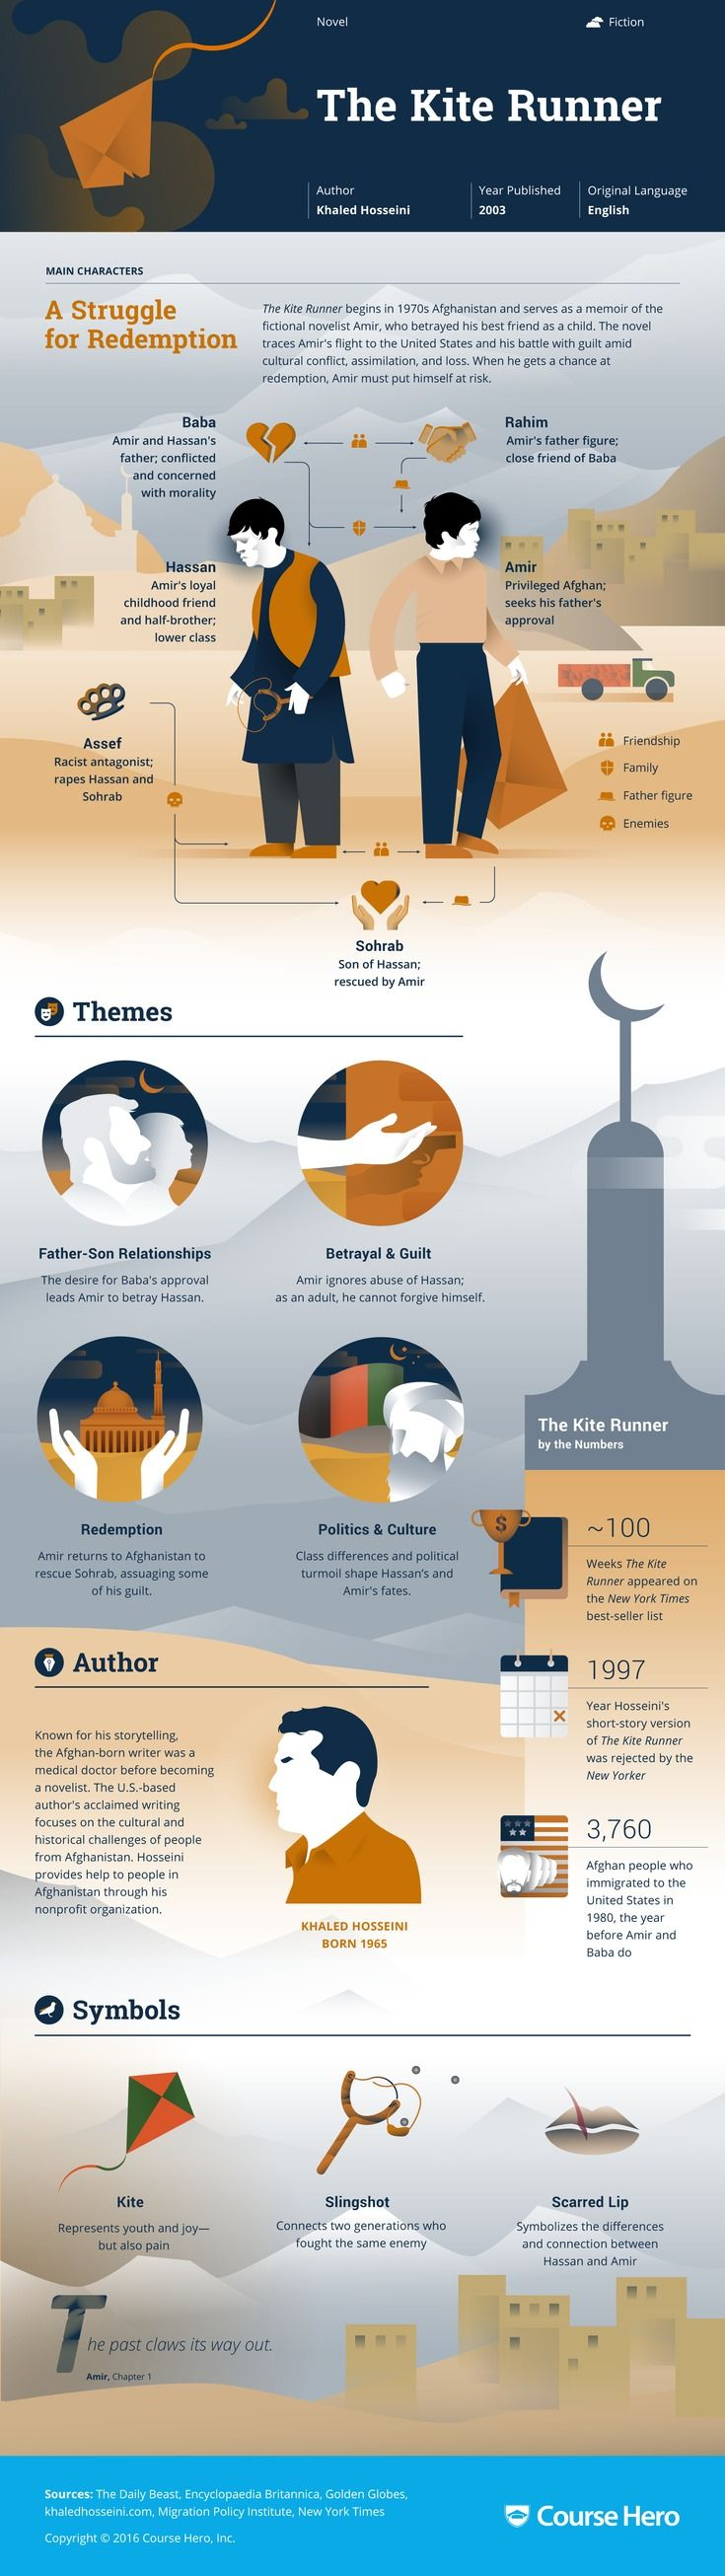 This @CourseHero infographic on The Kite Runner is both visually stunning and…